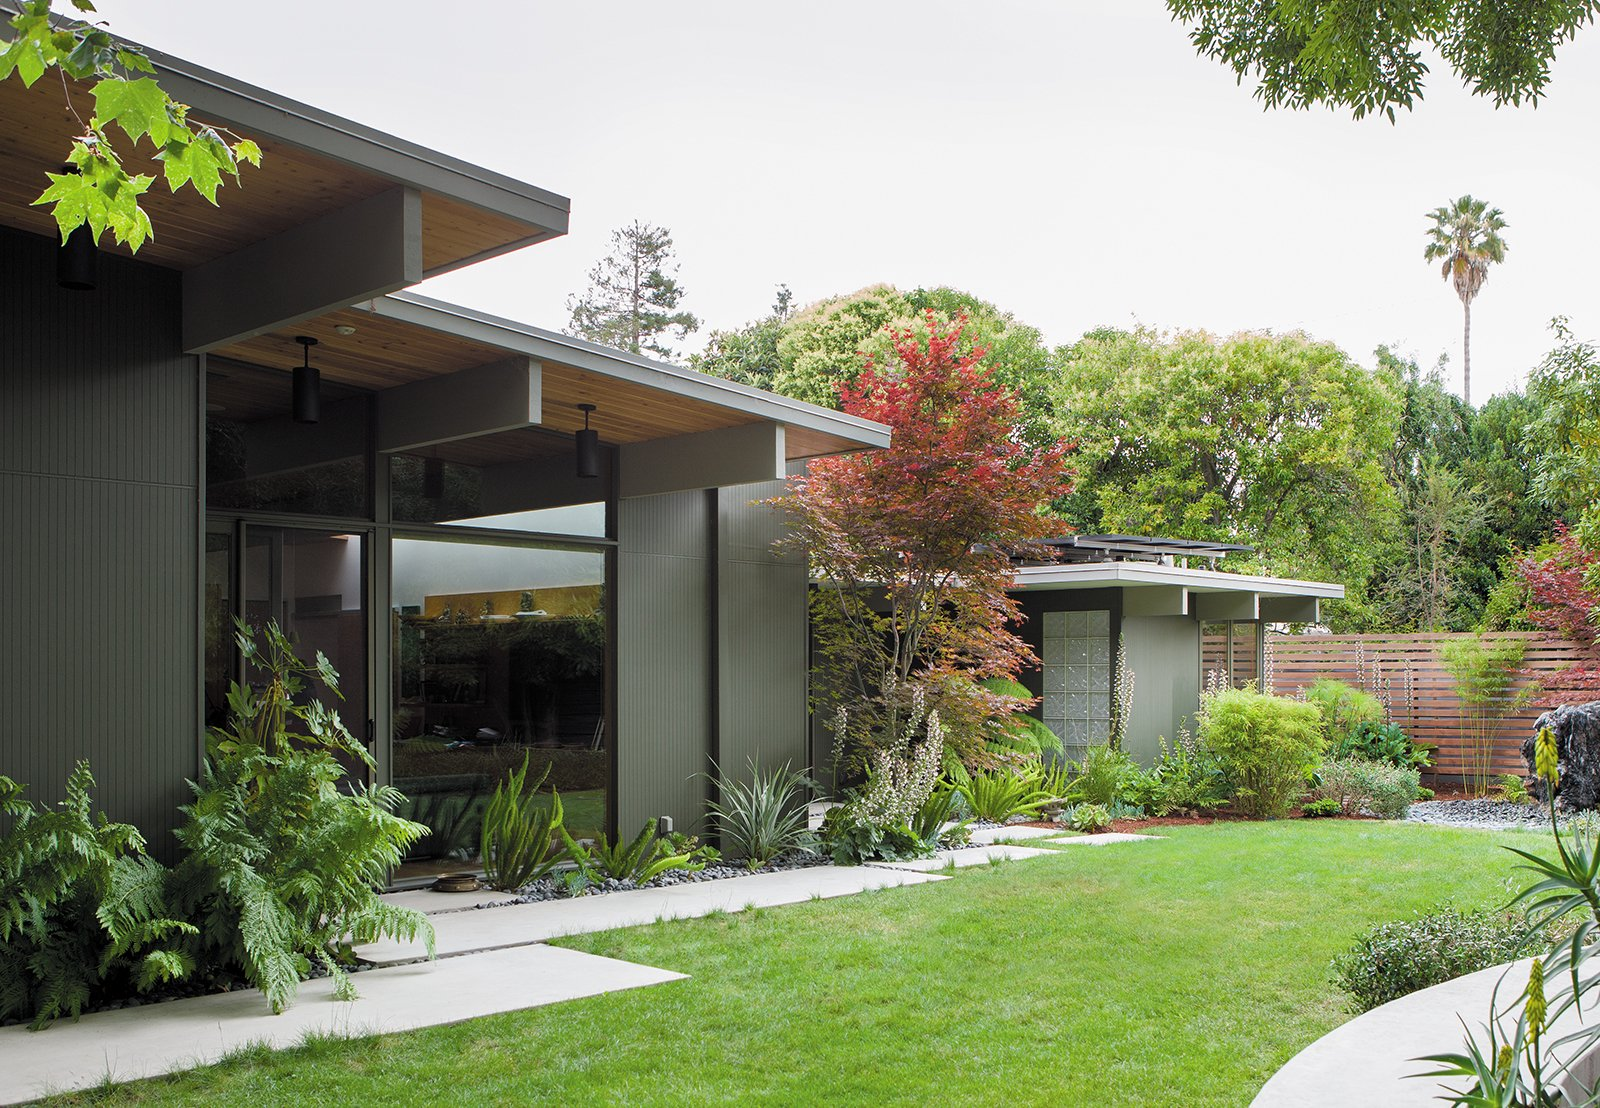 House, Wood, Outdoor, Grass, Walkways, and Concrete In the back, ferns and other shade-friendly plants thrive beneath the home's deep overhangs.  Best Outdoor House Wood Photos from Creative Landscape Design for a Renovated Eichler in California